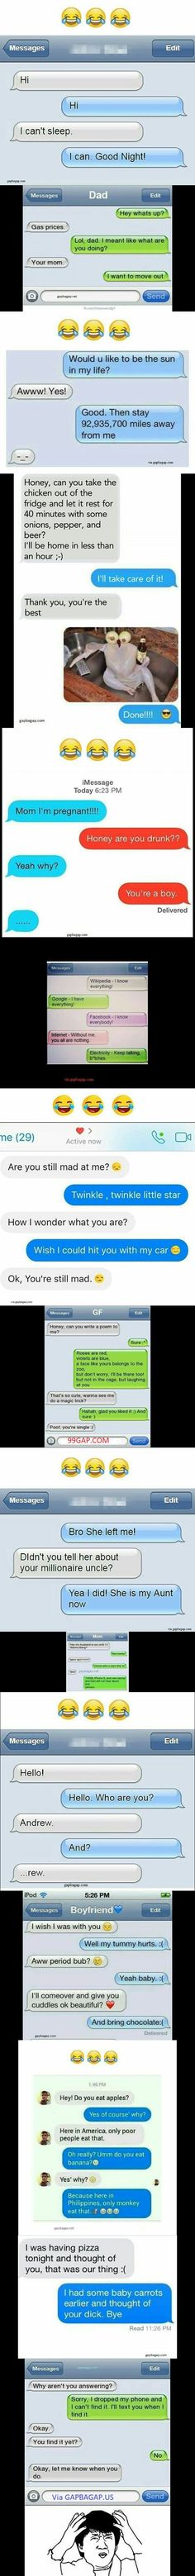 Viral Texts Collection On The Internet